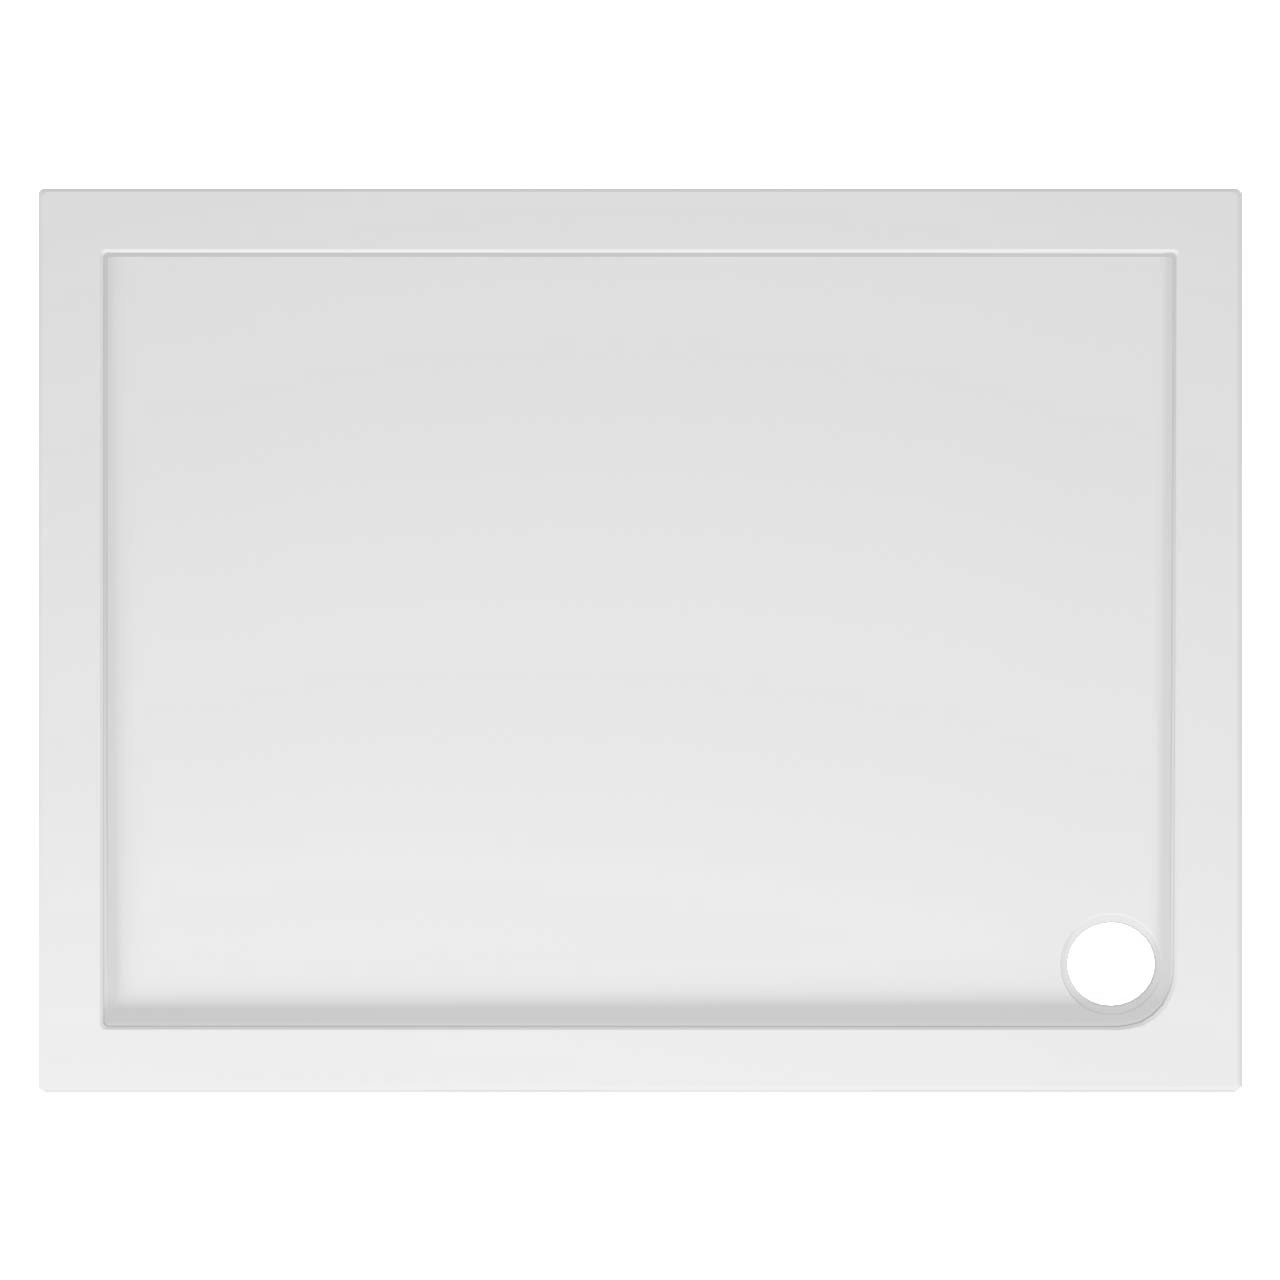 40mm Pearlstone 1200 x 900 Rectangular Shower Tray